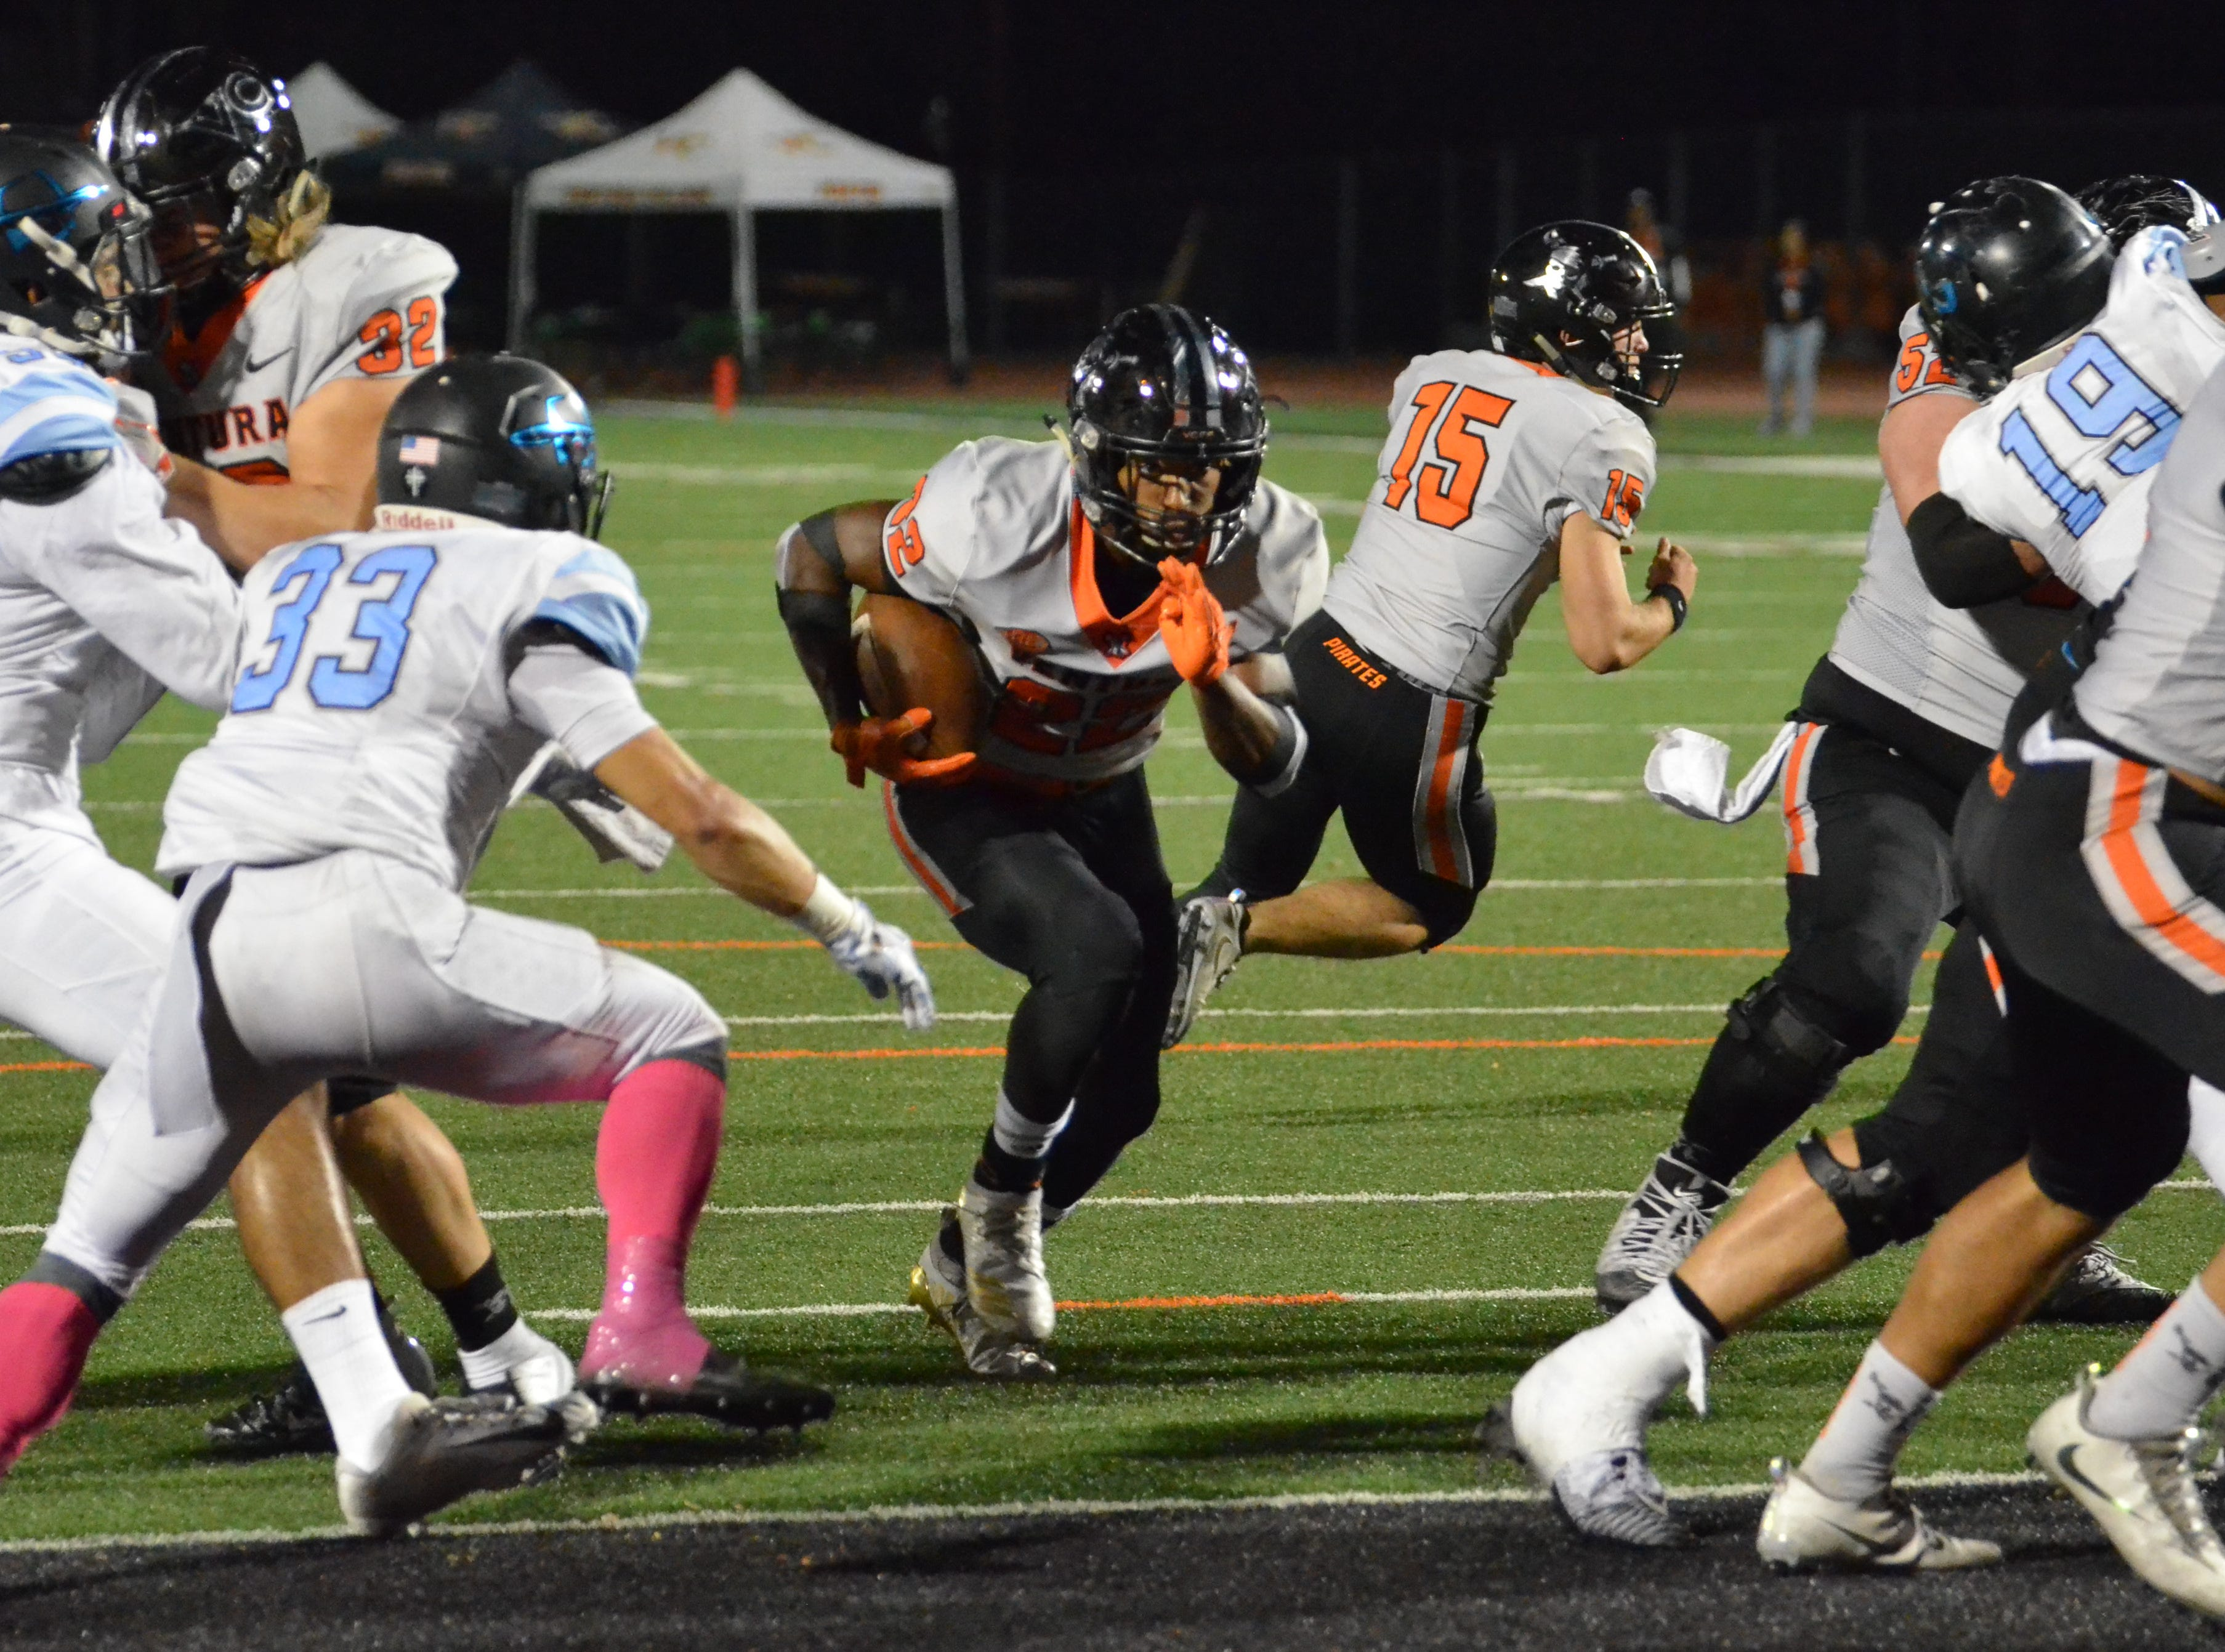 Ventura College's Gil'Scott Jackson runs for a touchdown in the 51st Citrus Cup game on Saturday night at the VC Sportsplex. VC won 62-7.